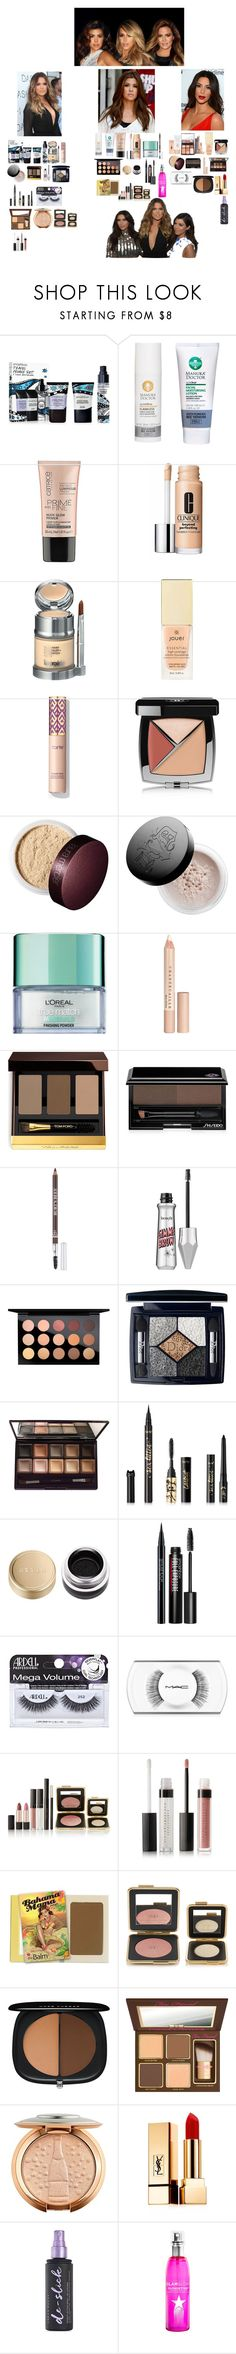 """""""Kim, Kourtney And Khloe Inspired Makeup"""" by hayleyjacksonuk ❤ liked on Polyvore featuring beauty, By Terry, Smashbox, Charlotte Tilbury, Manuka Doctor, Clinique, La Prairie, Jouer, Chanel and Laura Mercier"""